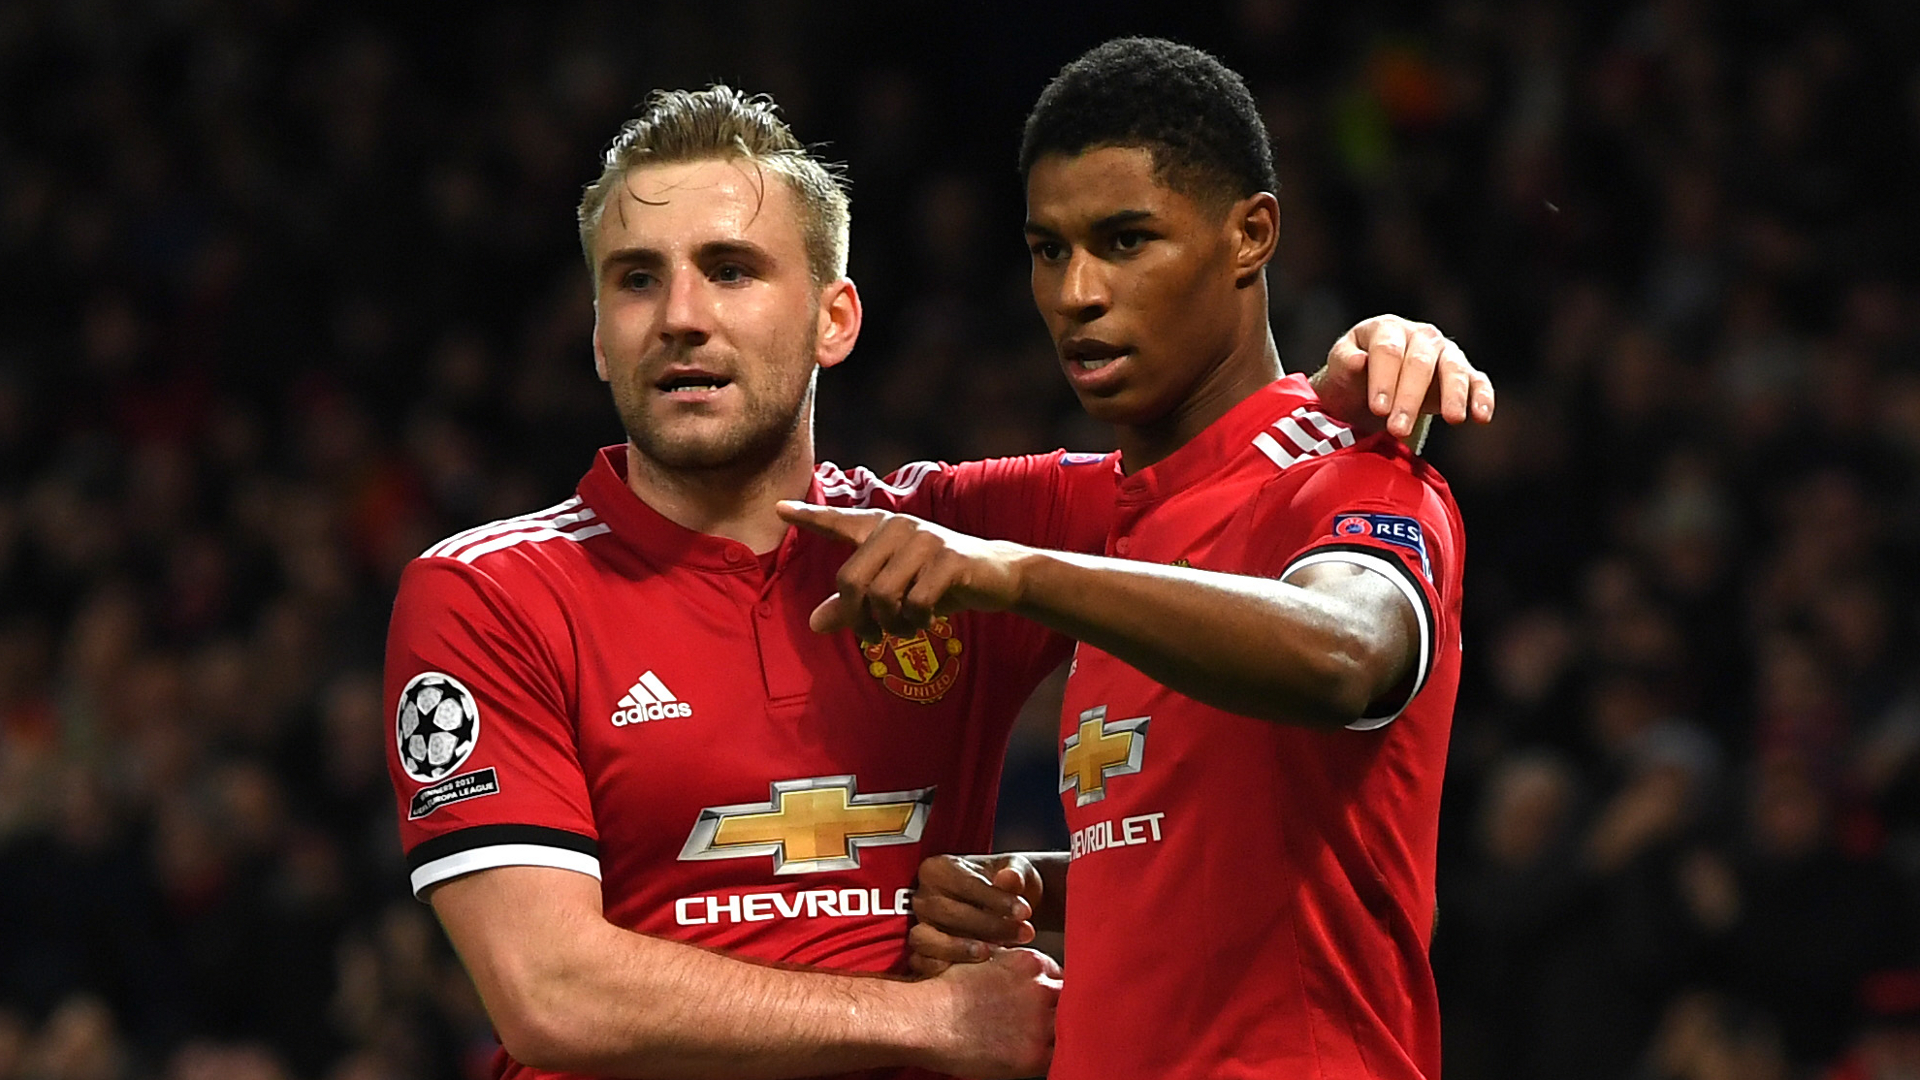 New man utd contract a natural consequence for shaw says rashford shaw manchester united cska voltagebd Image collections